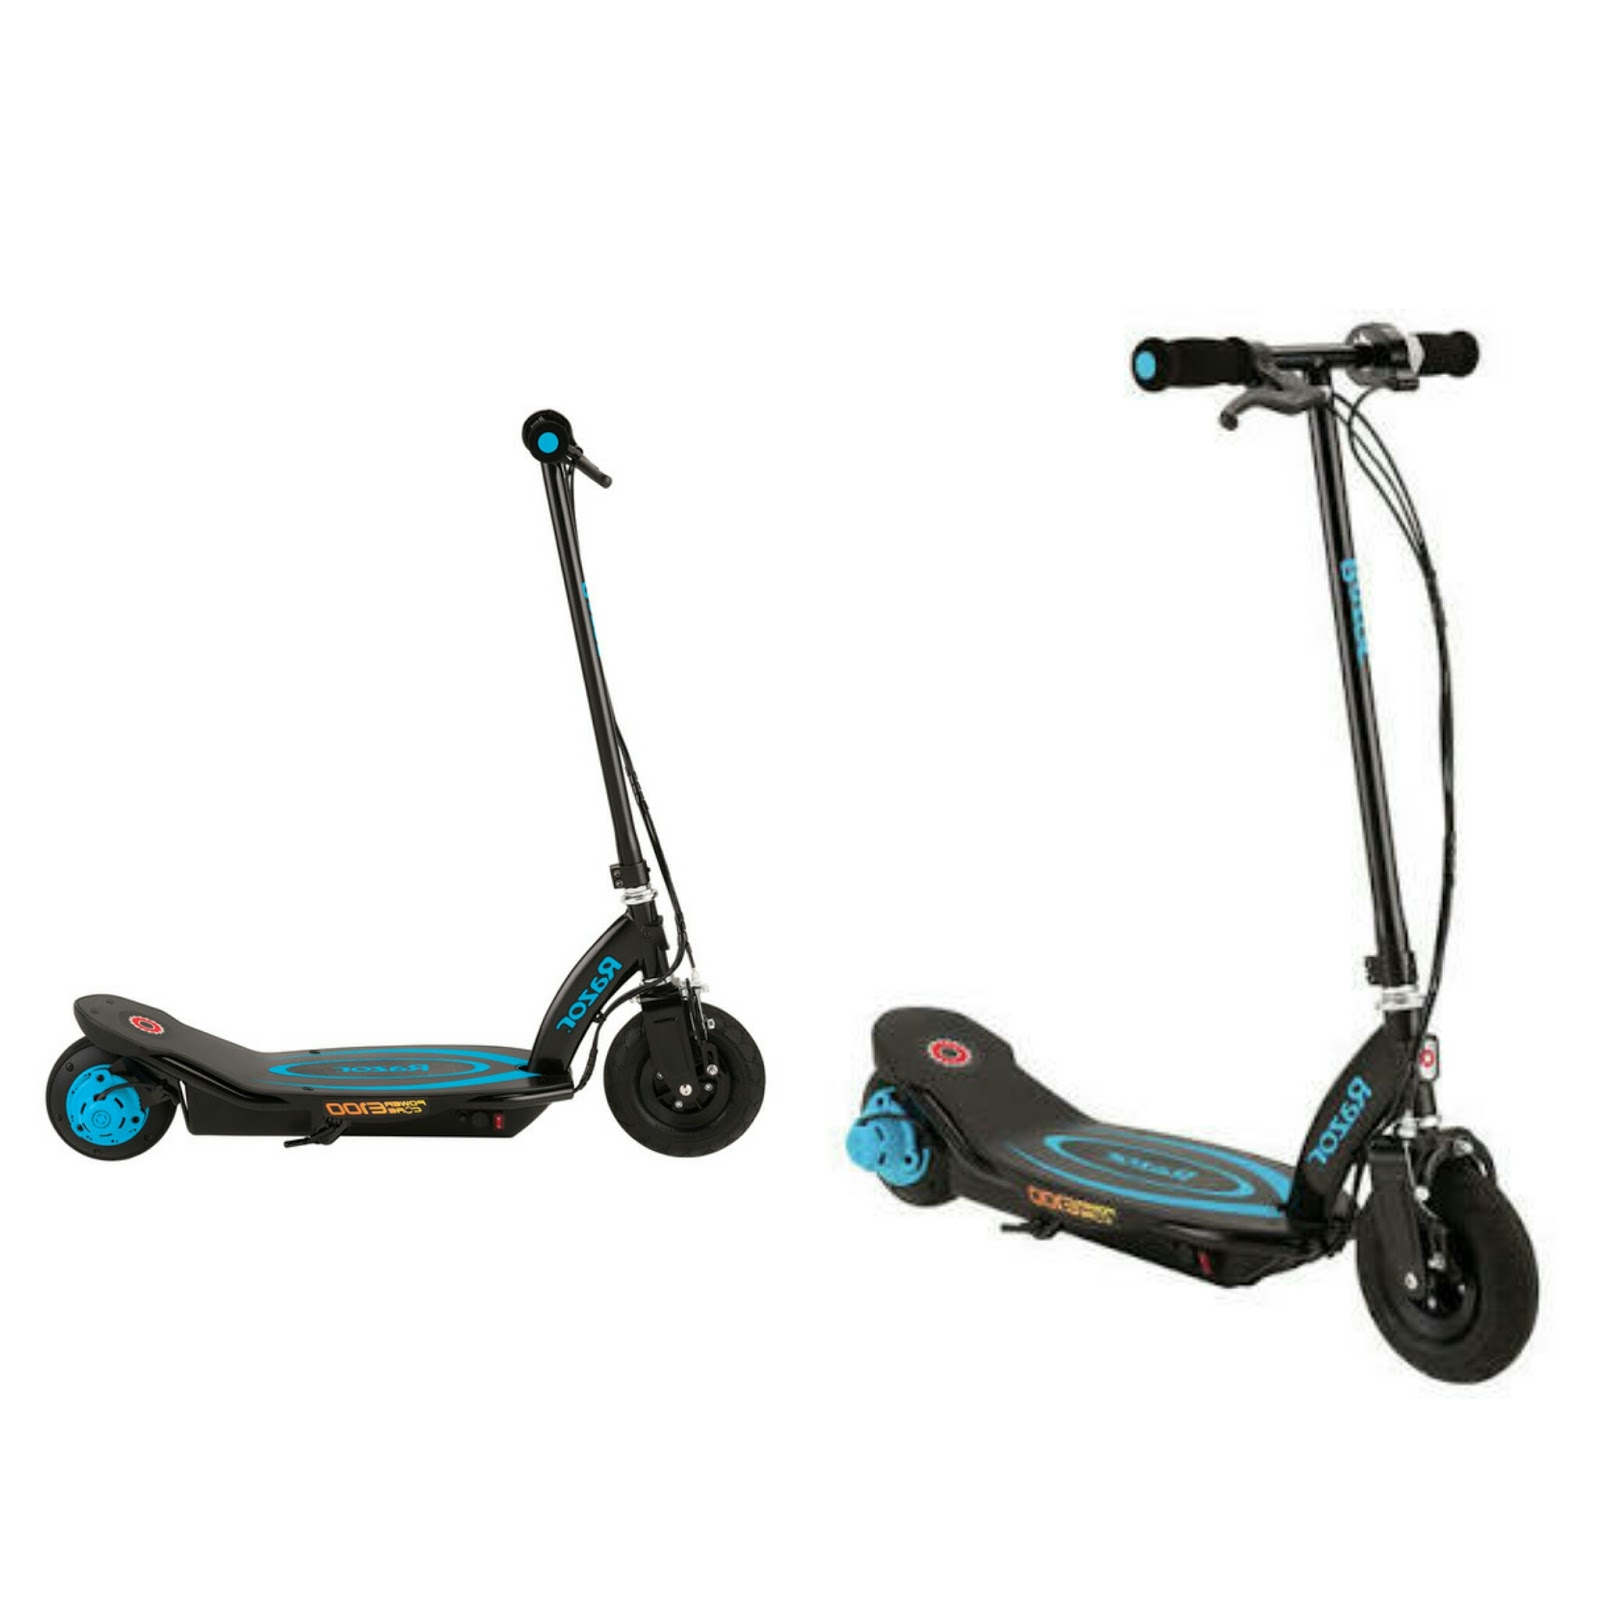 Electric Scooters At Toys R Us